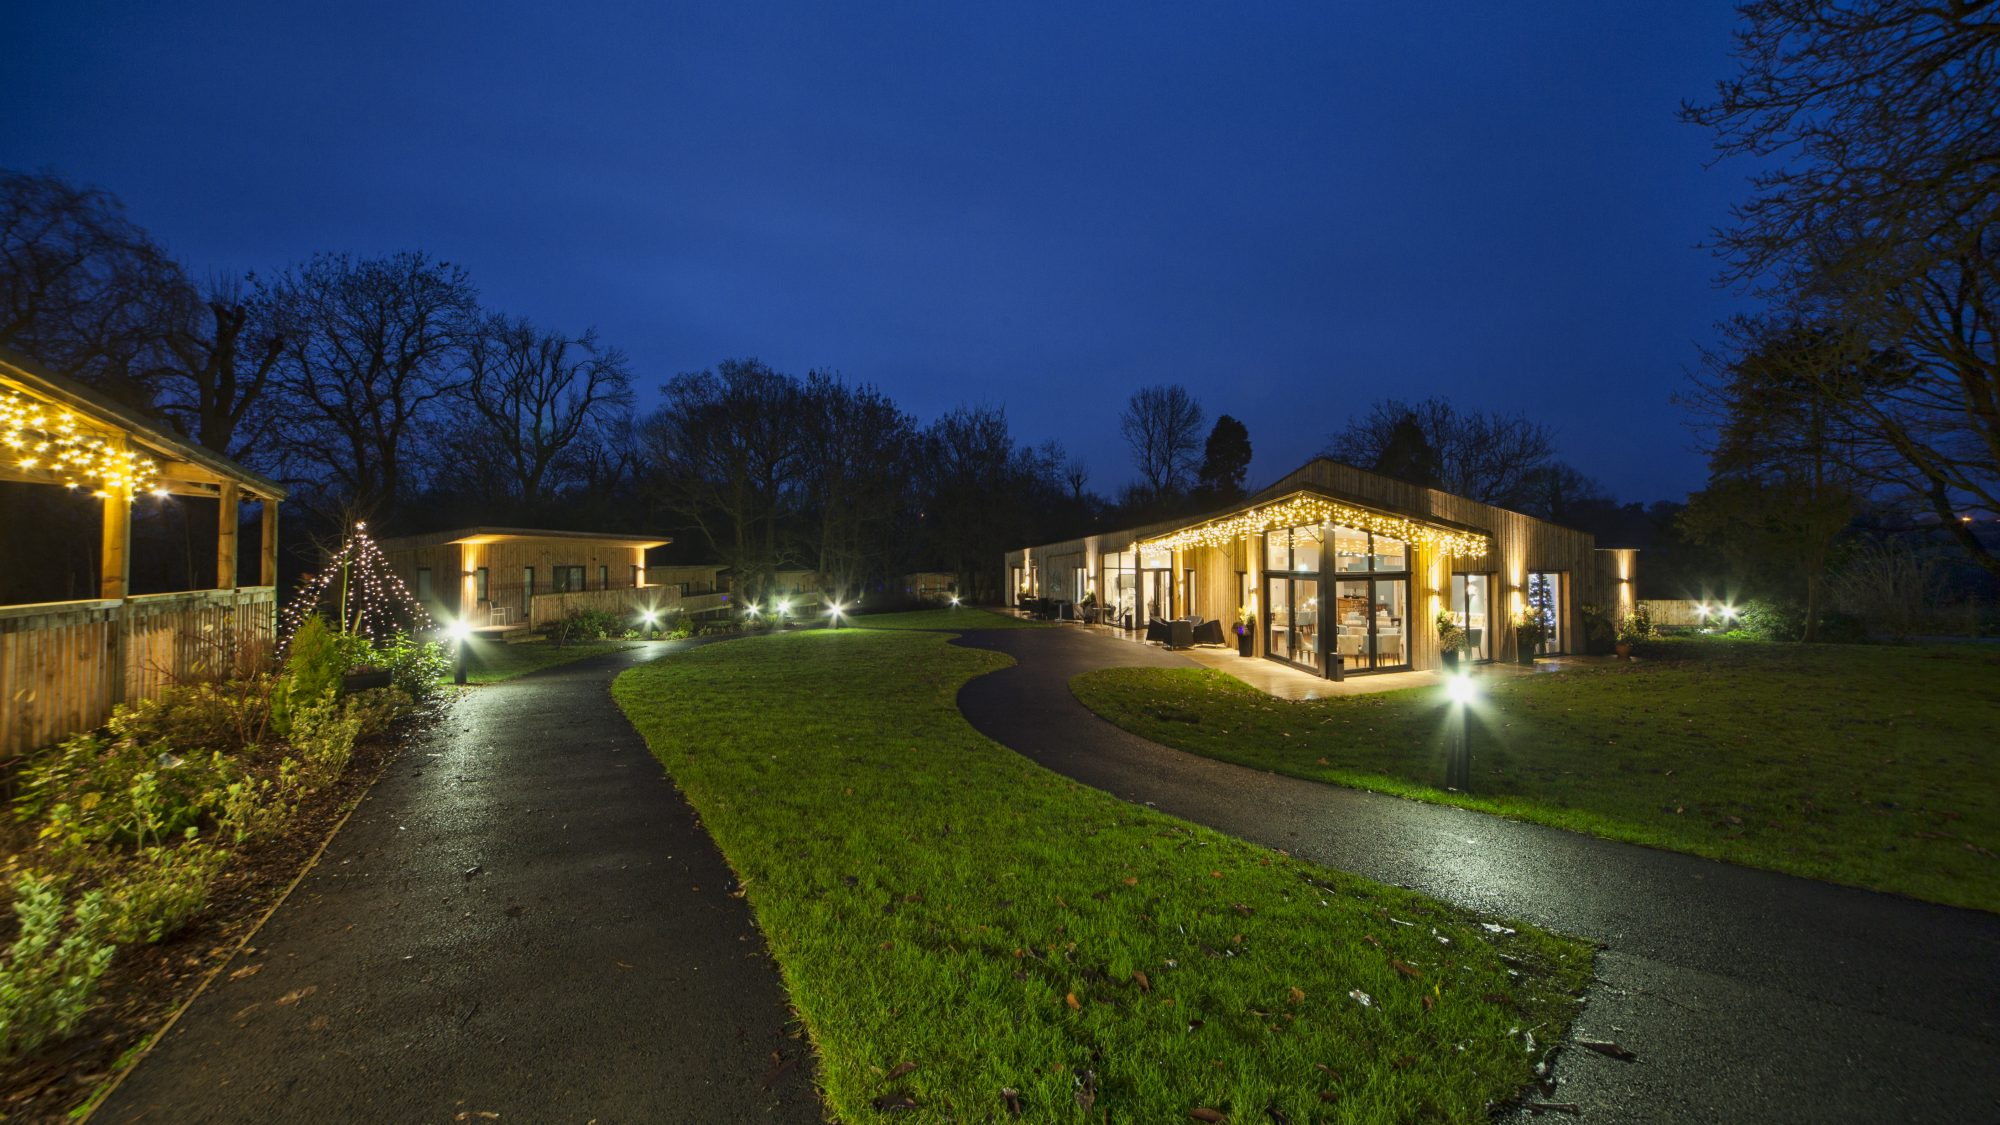 Woodland venue at night